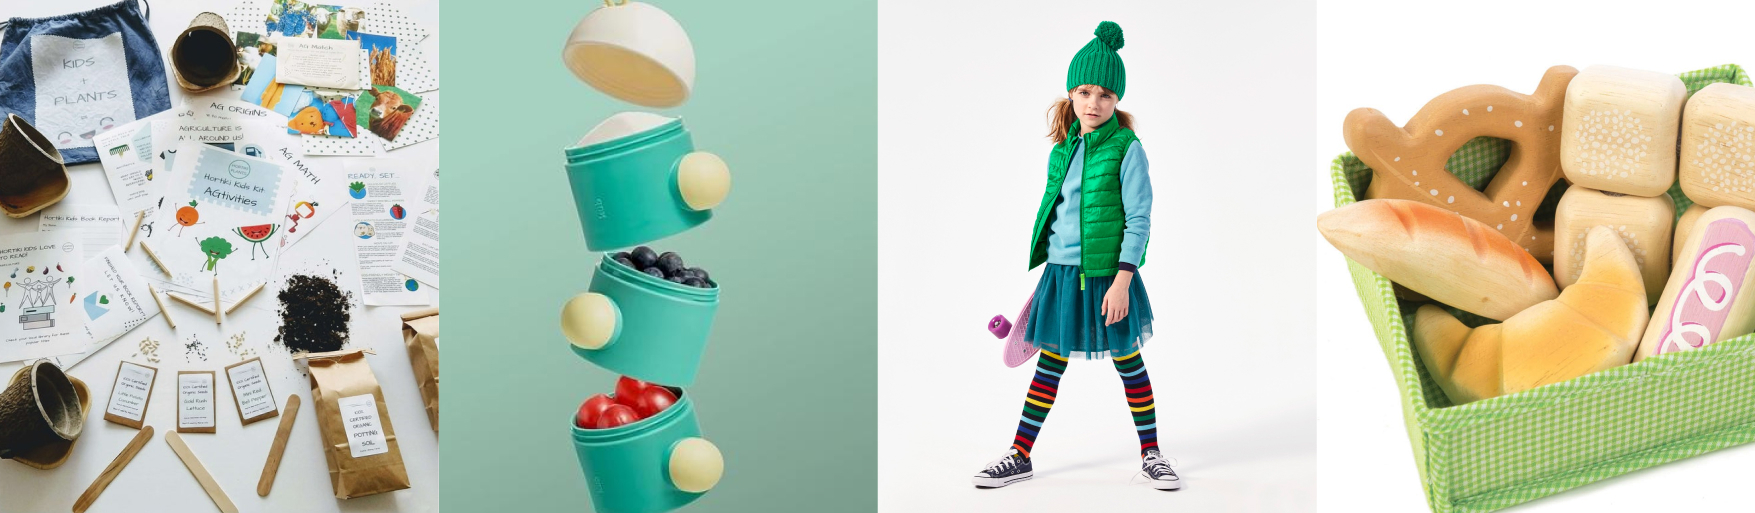 row of gardening kid, green snack container, girl wearing green vest and tulle skirt, wooden bread in green basket